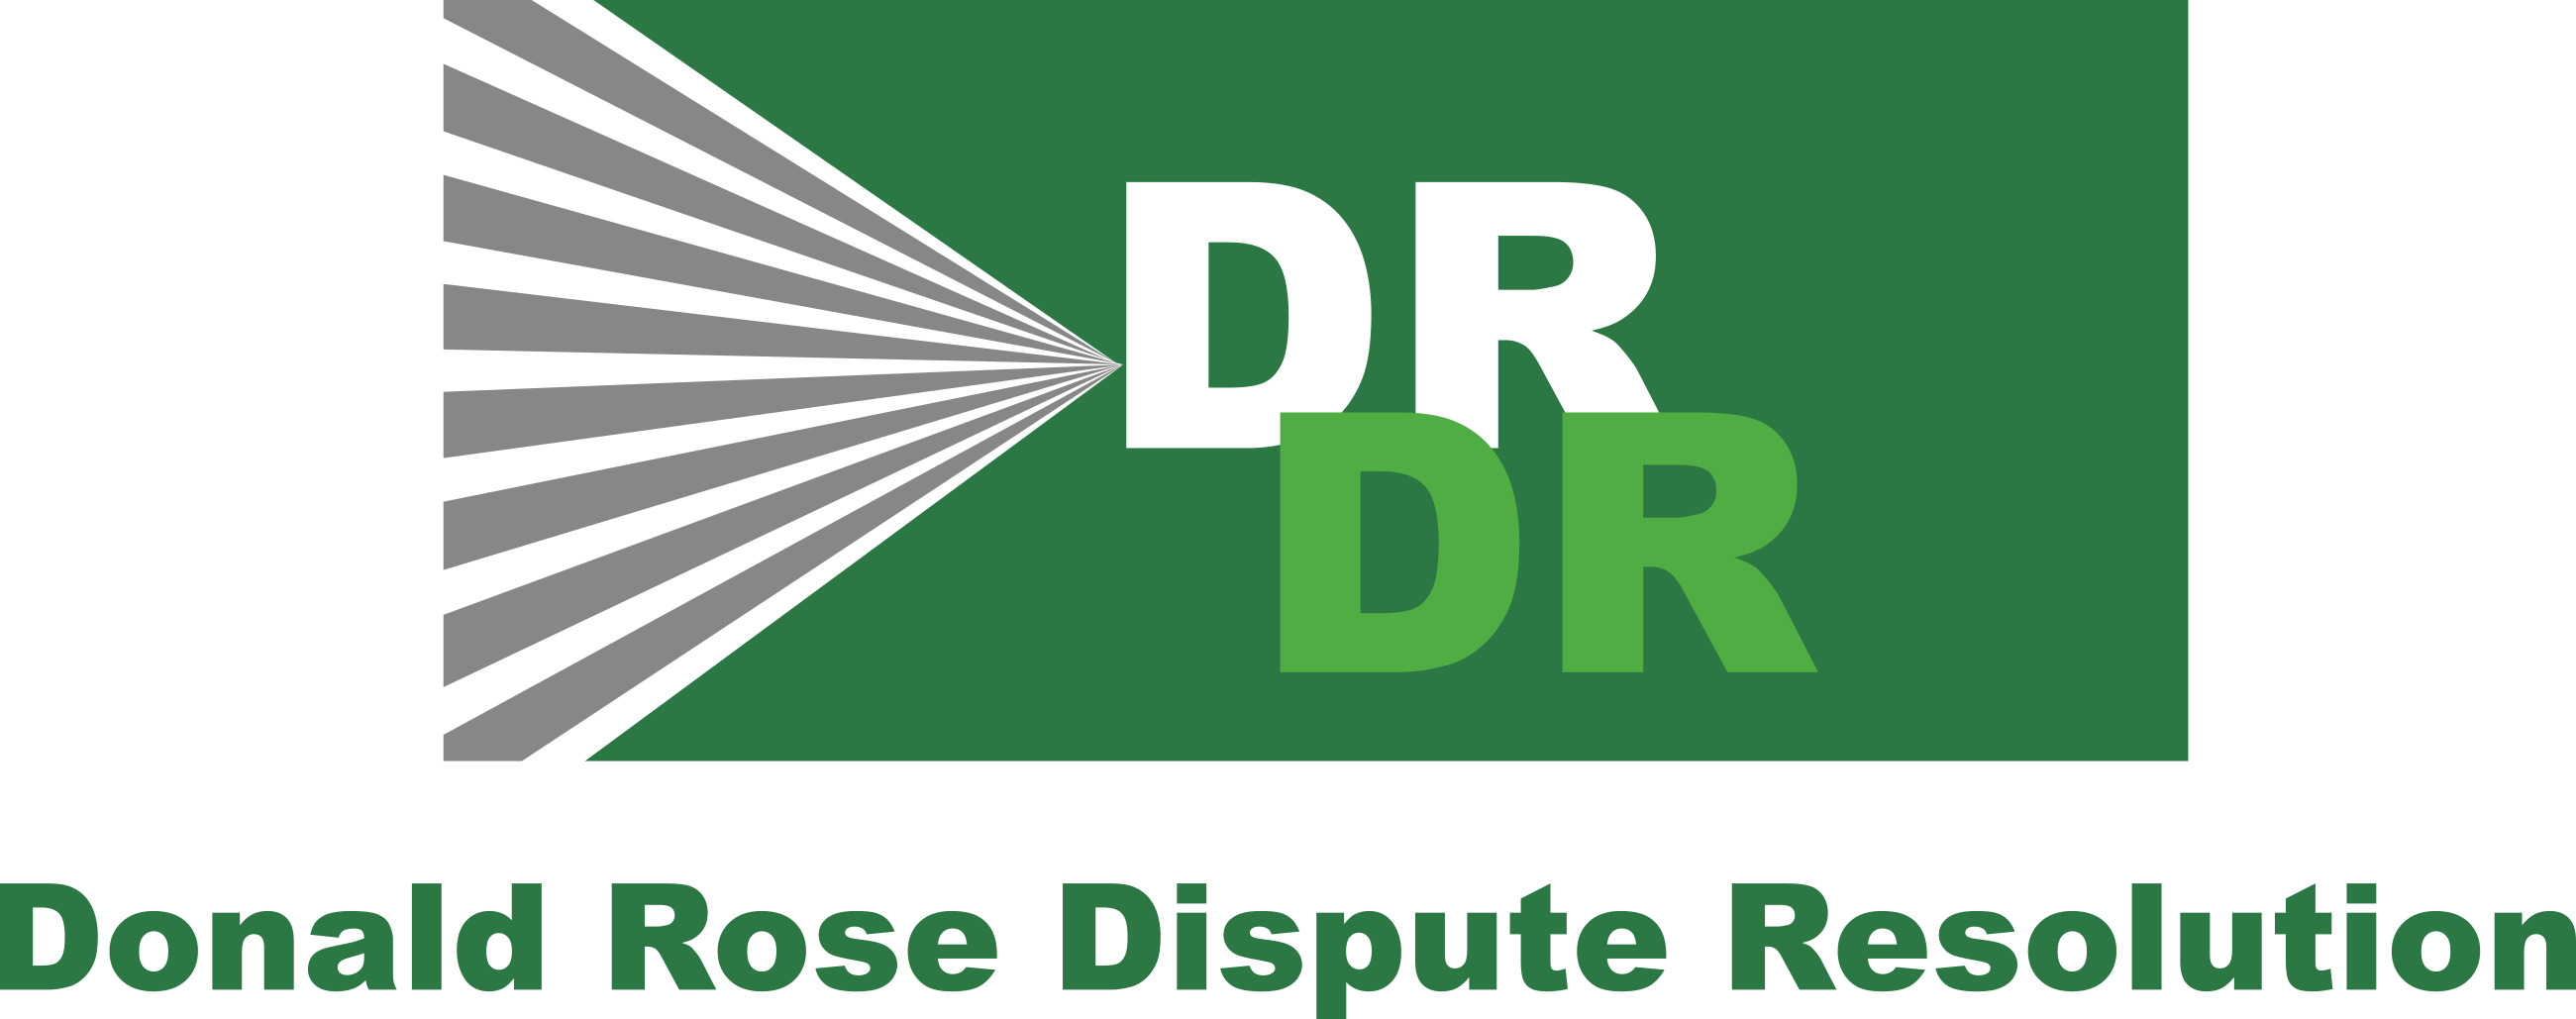 Donald Rose Dispute Resolution